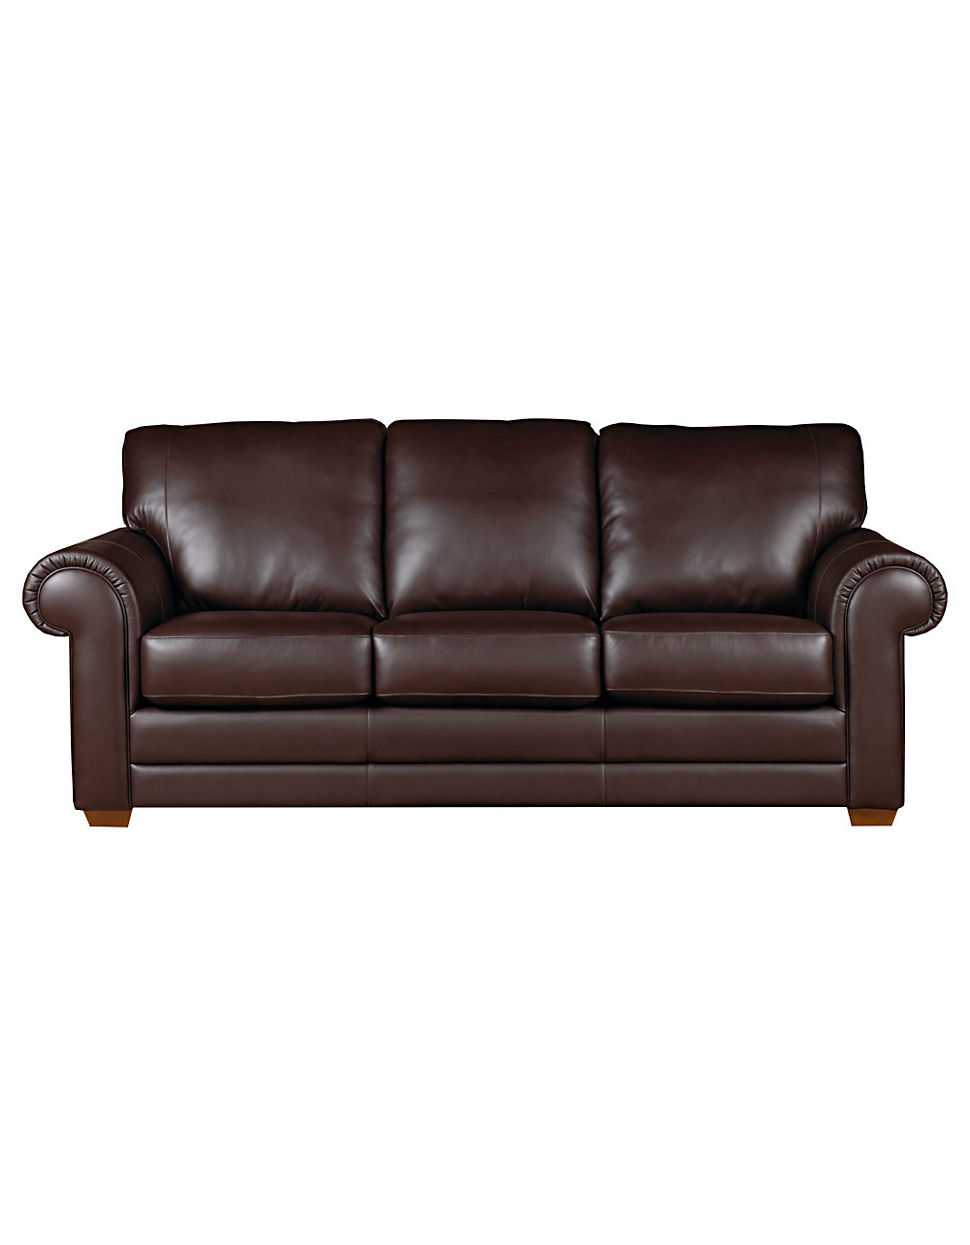 full grain leather sofa canada. Black Bedroom Furniture Sets. Home Design Ideas